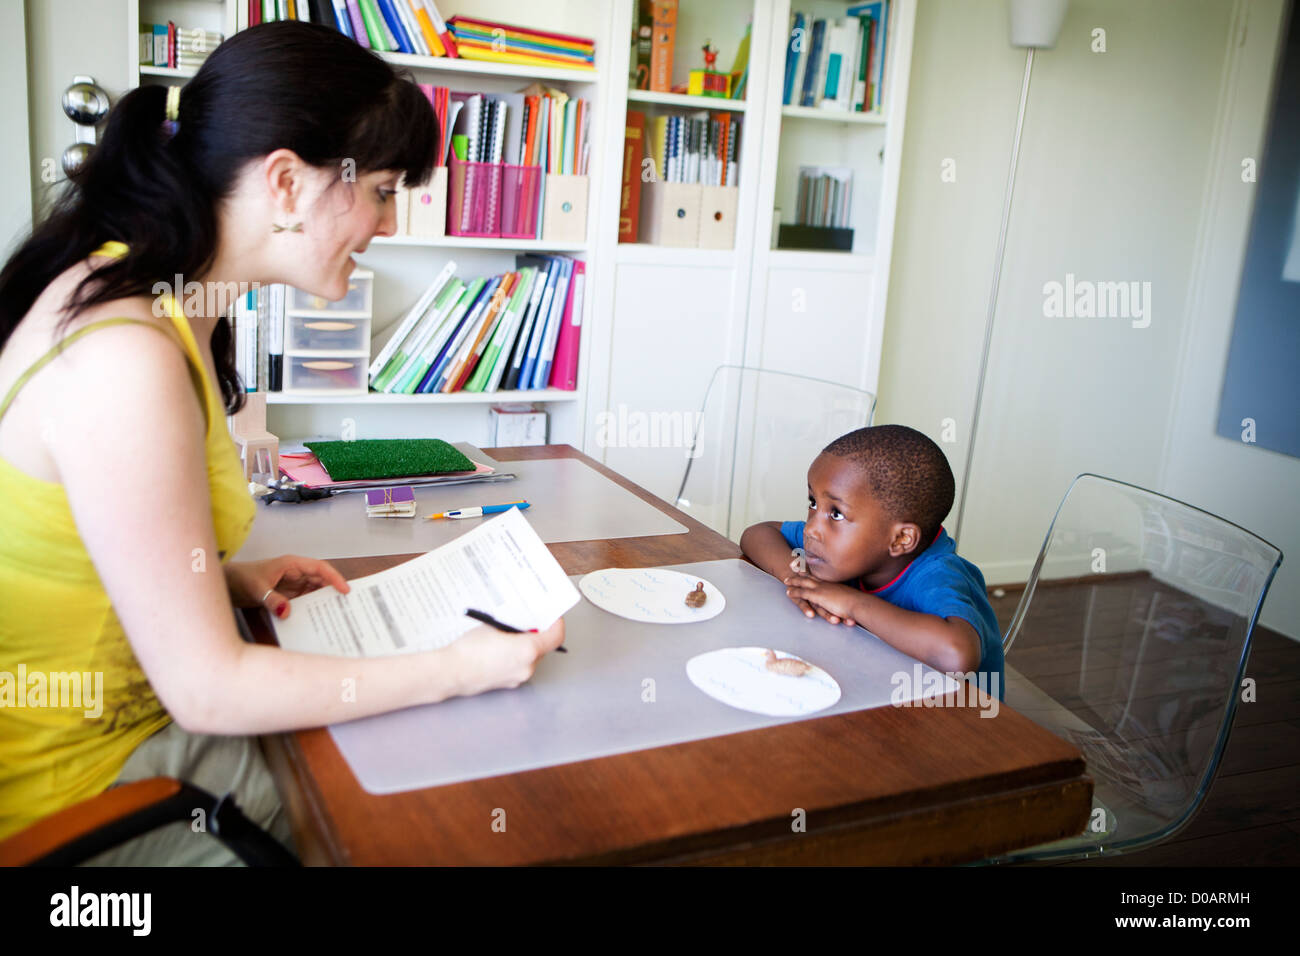 CHILD IN SPEECH THERAPY - Stock Image